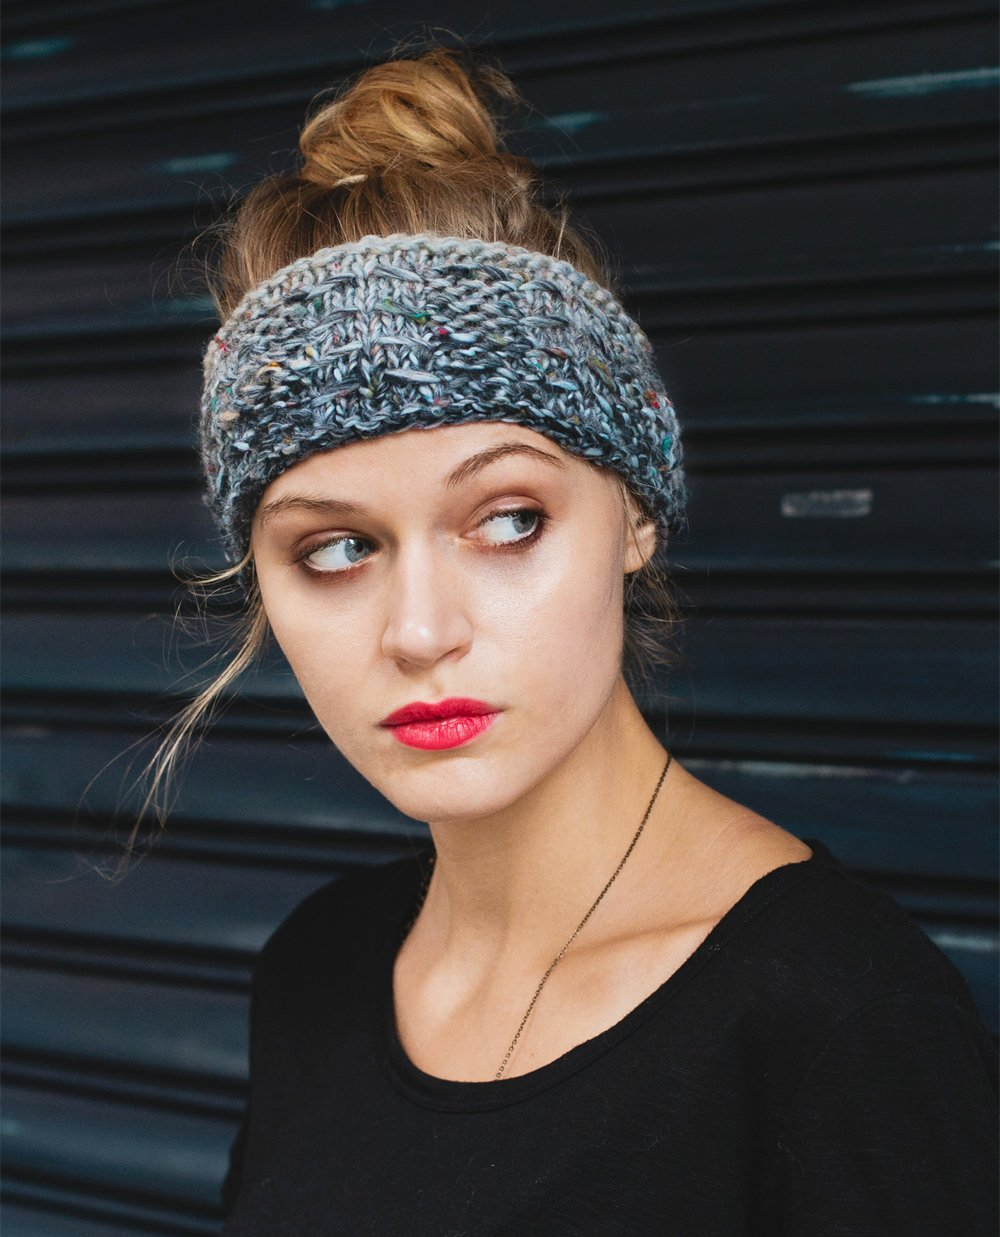 Knit Pattern For Headband : The Stone and Arrow Free Knitting Pattern - Sheep and Stitch